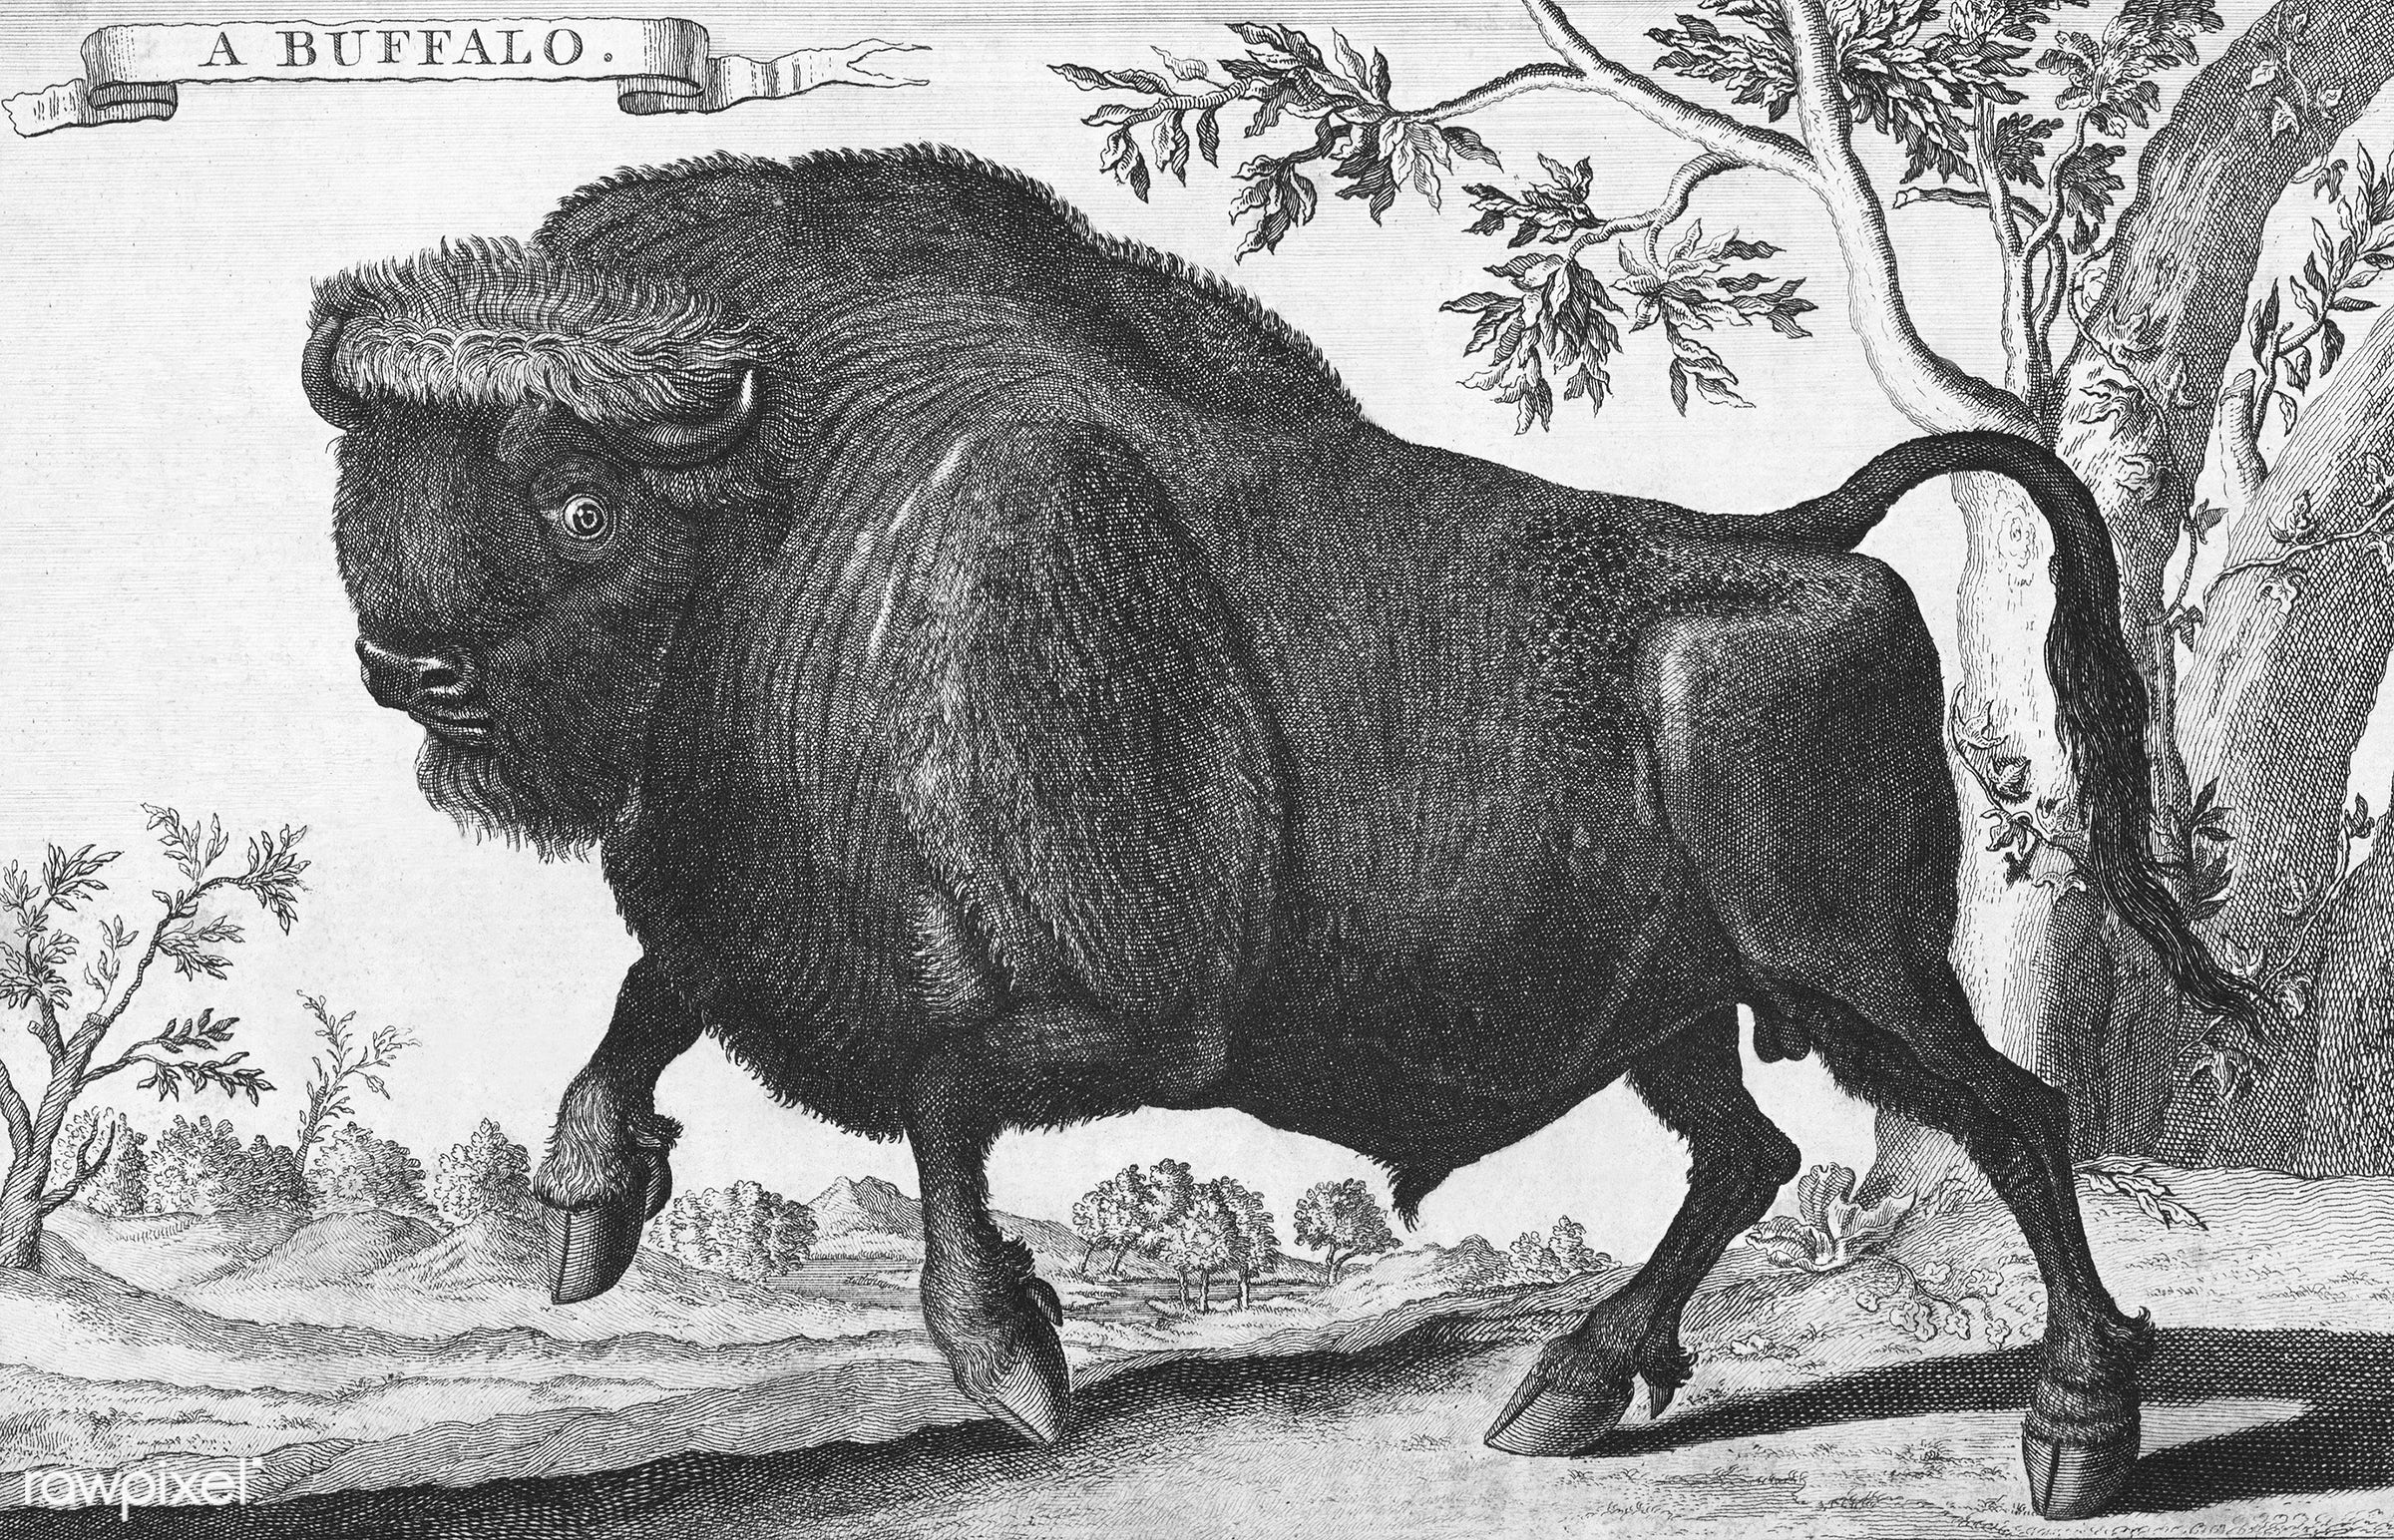 Vintage illustration of Buffalo published in 1745-1747 by Thomas Astley. - animal, antique, artwork, bison, buffalo, cc0,...